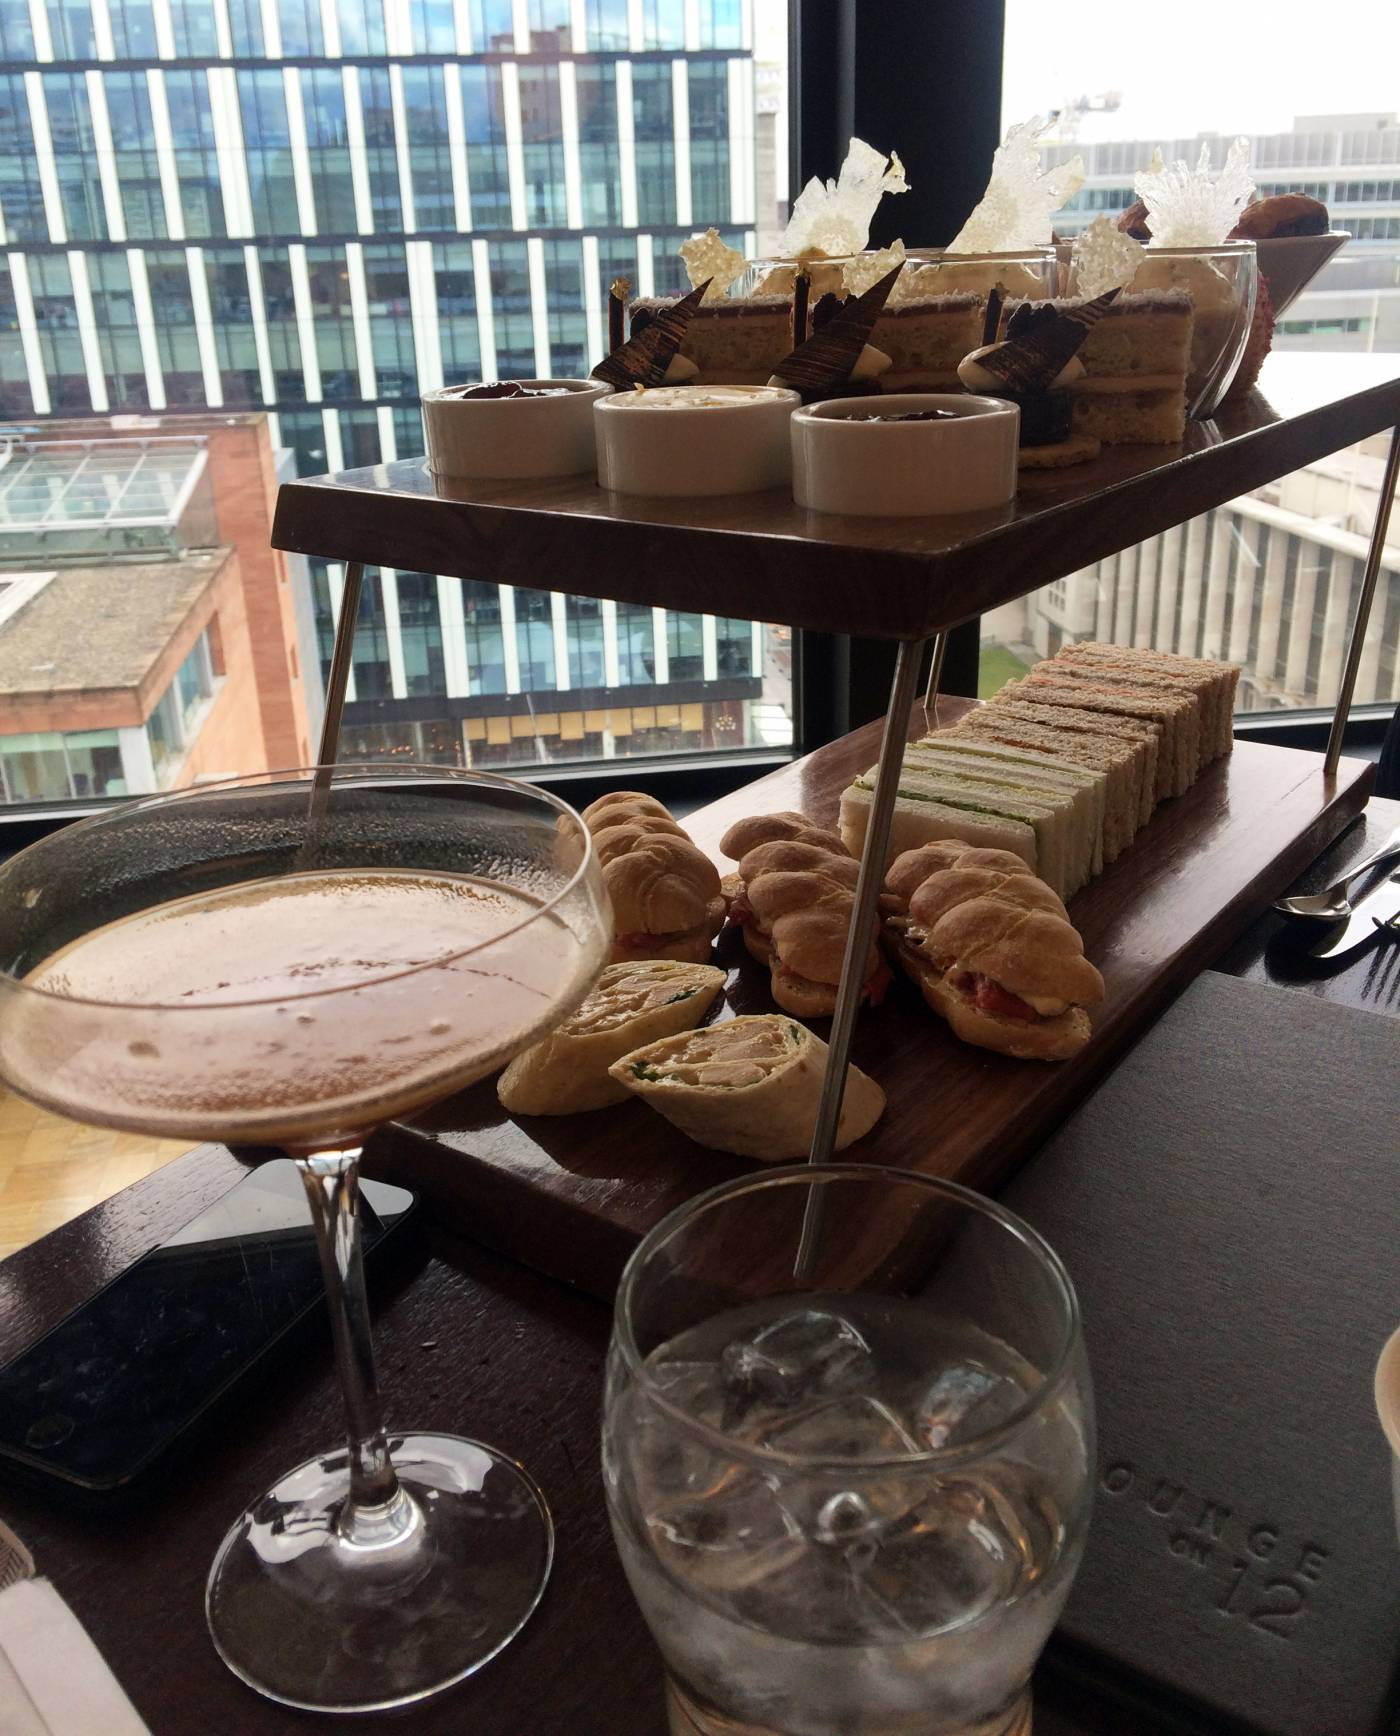 manchester house afternoon tea